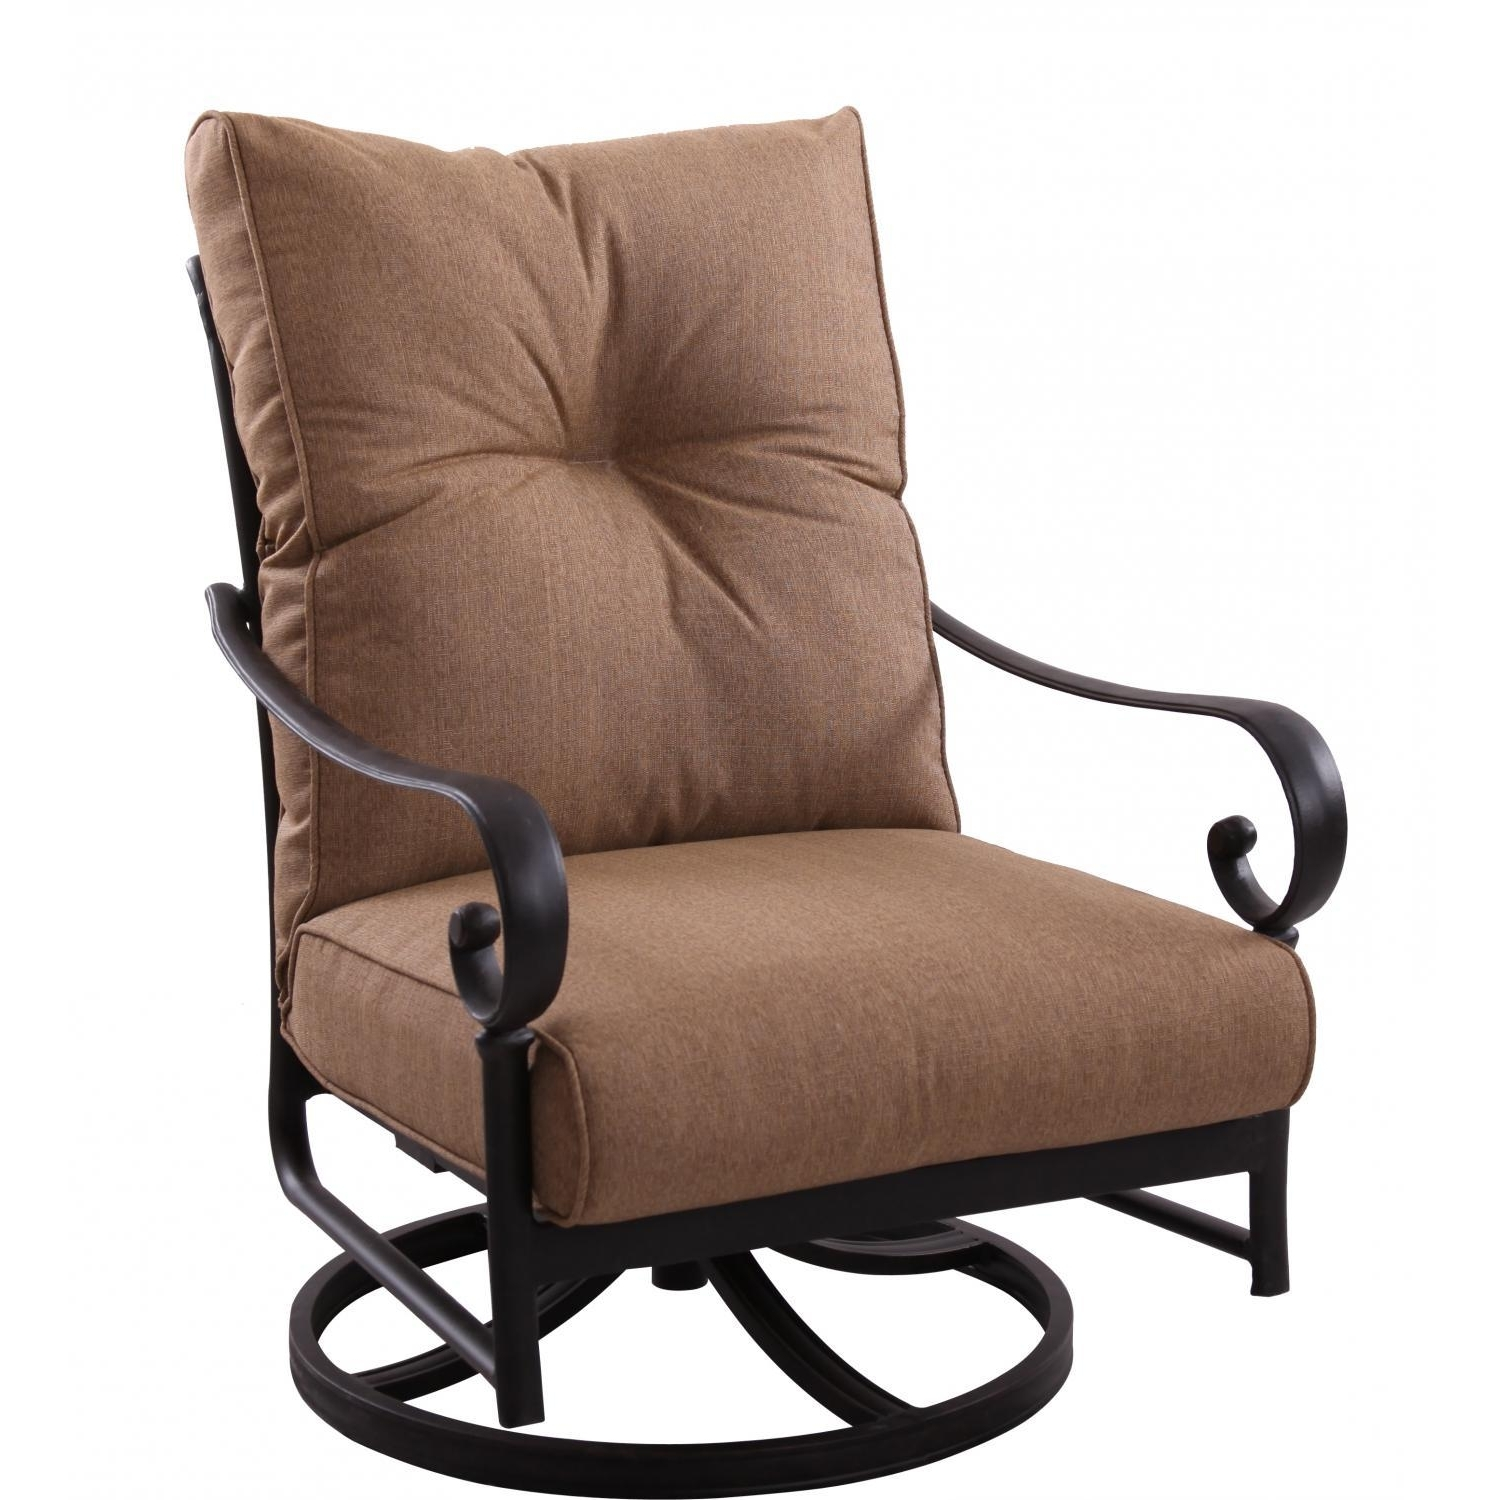 Well Liked 99 Patio Swivel Rocker Chairs Rocking Chair Design Patio Table And Intended For Aluminum Patio Rocking Chairs (View 19 of 20)